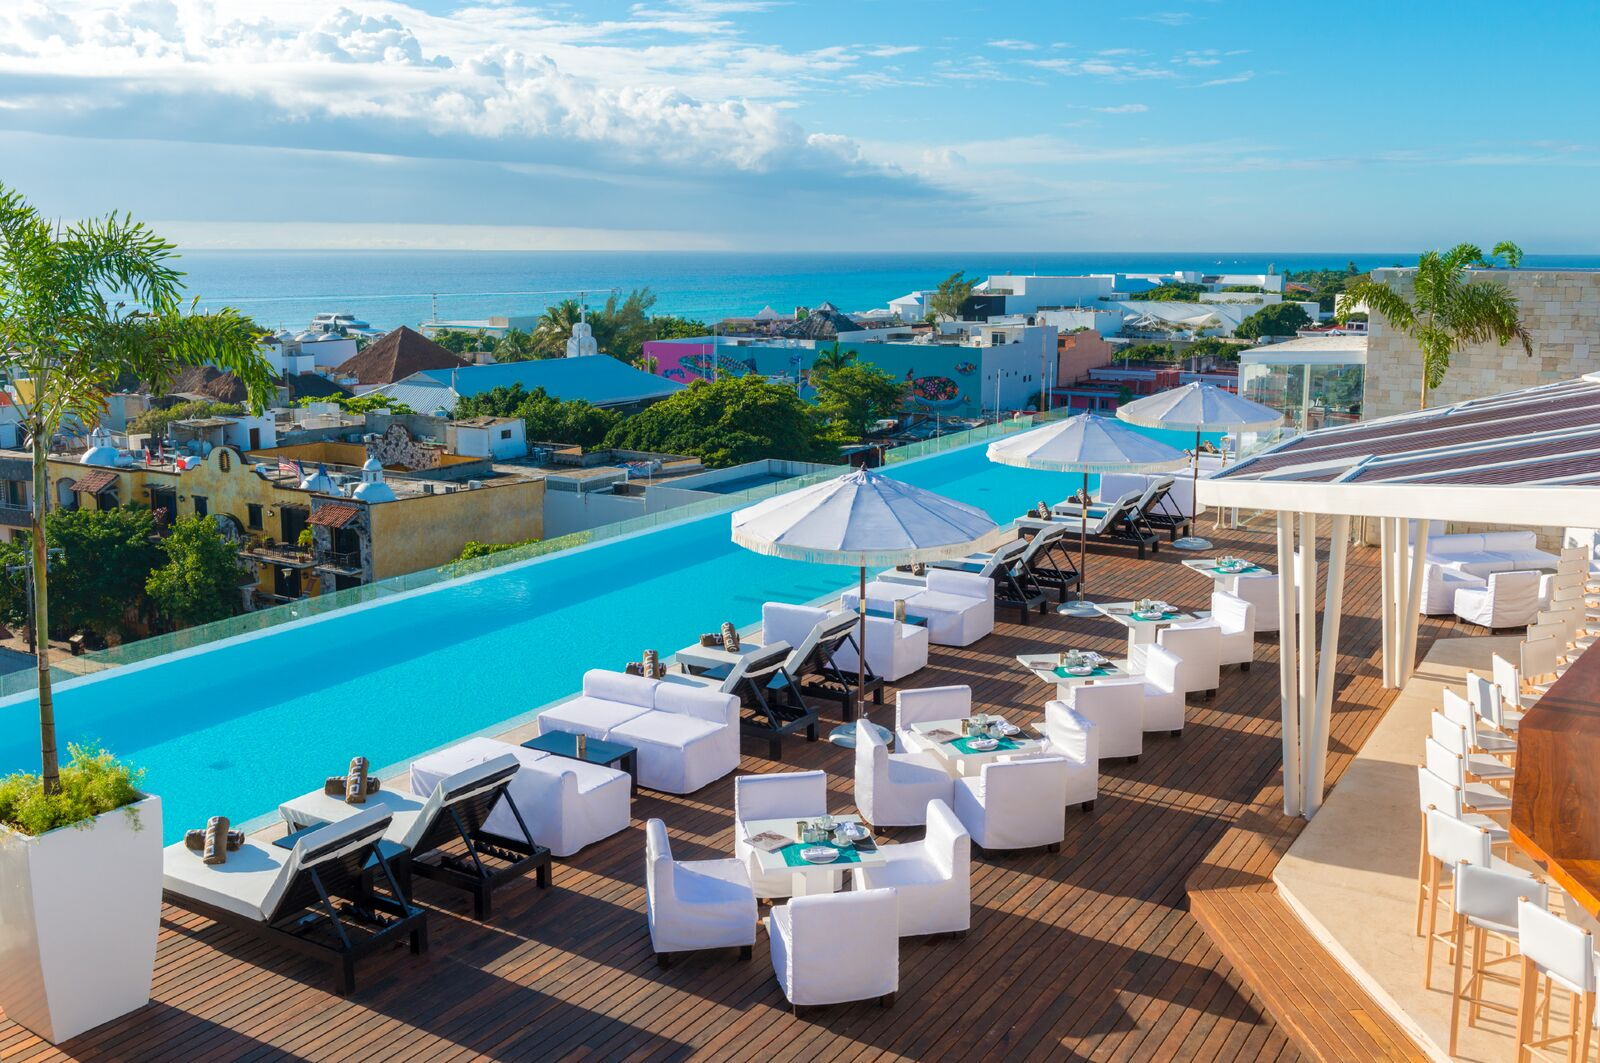 A chic boutique hotel arrives in Playa Del Carmen